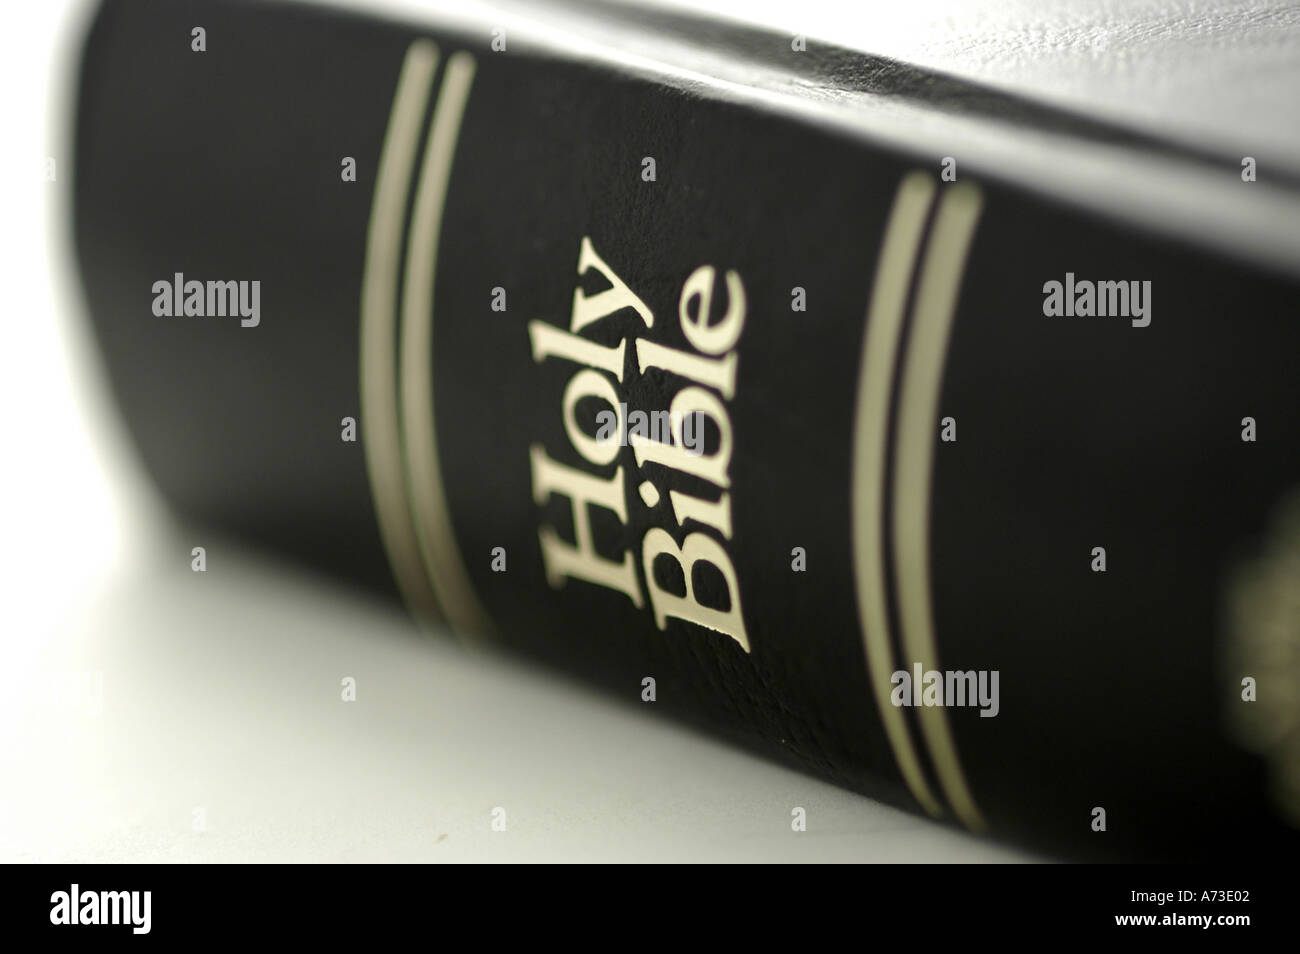 Bible Cover Stock Photos & Bible Cover Stock Images - Alamy Holy Bible Side Cover